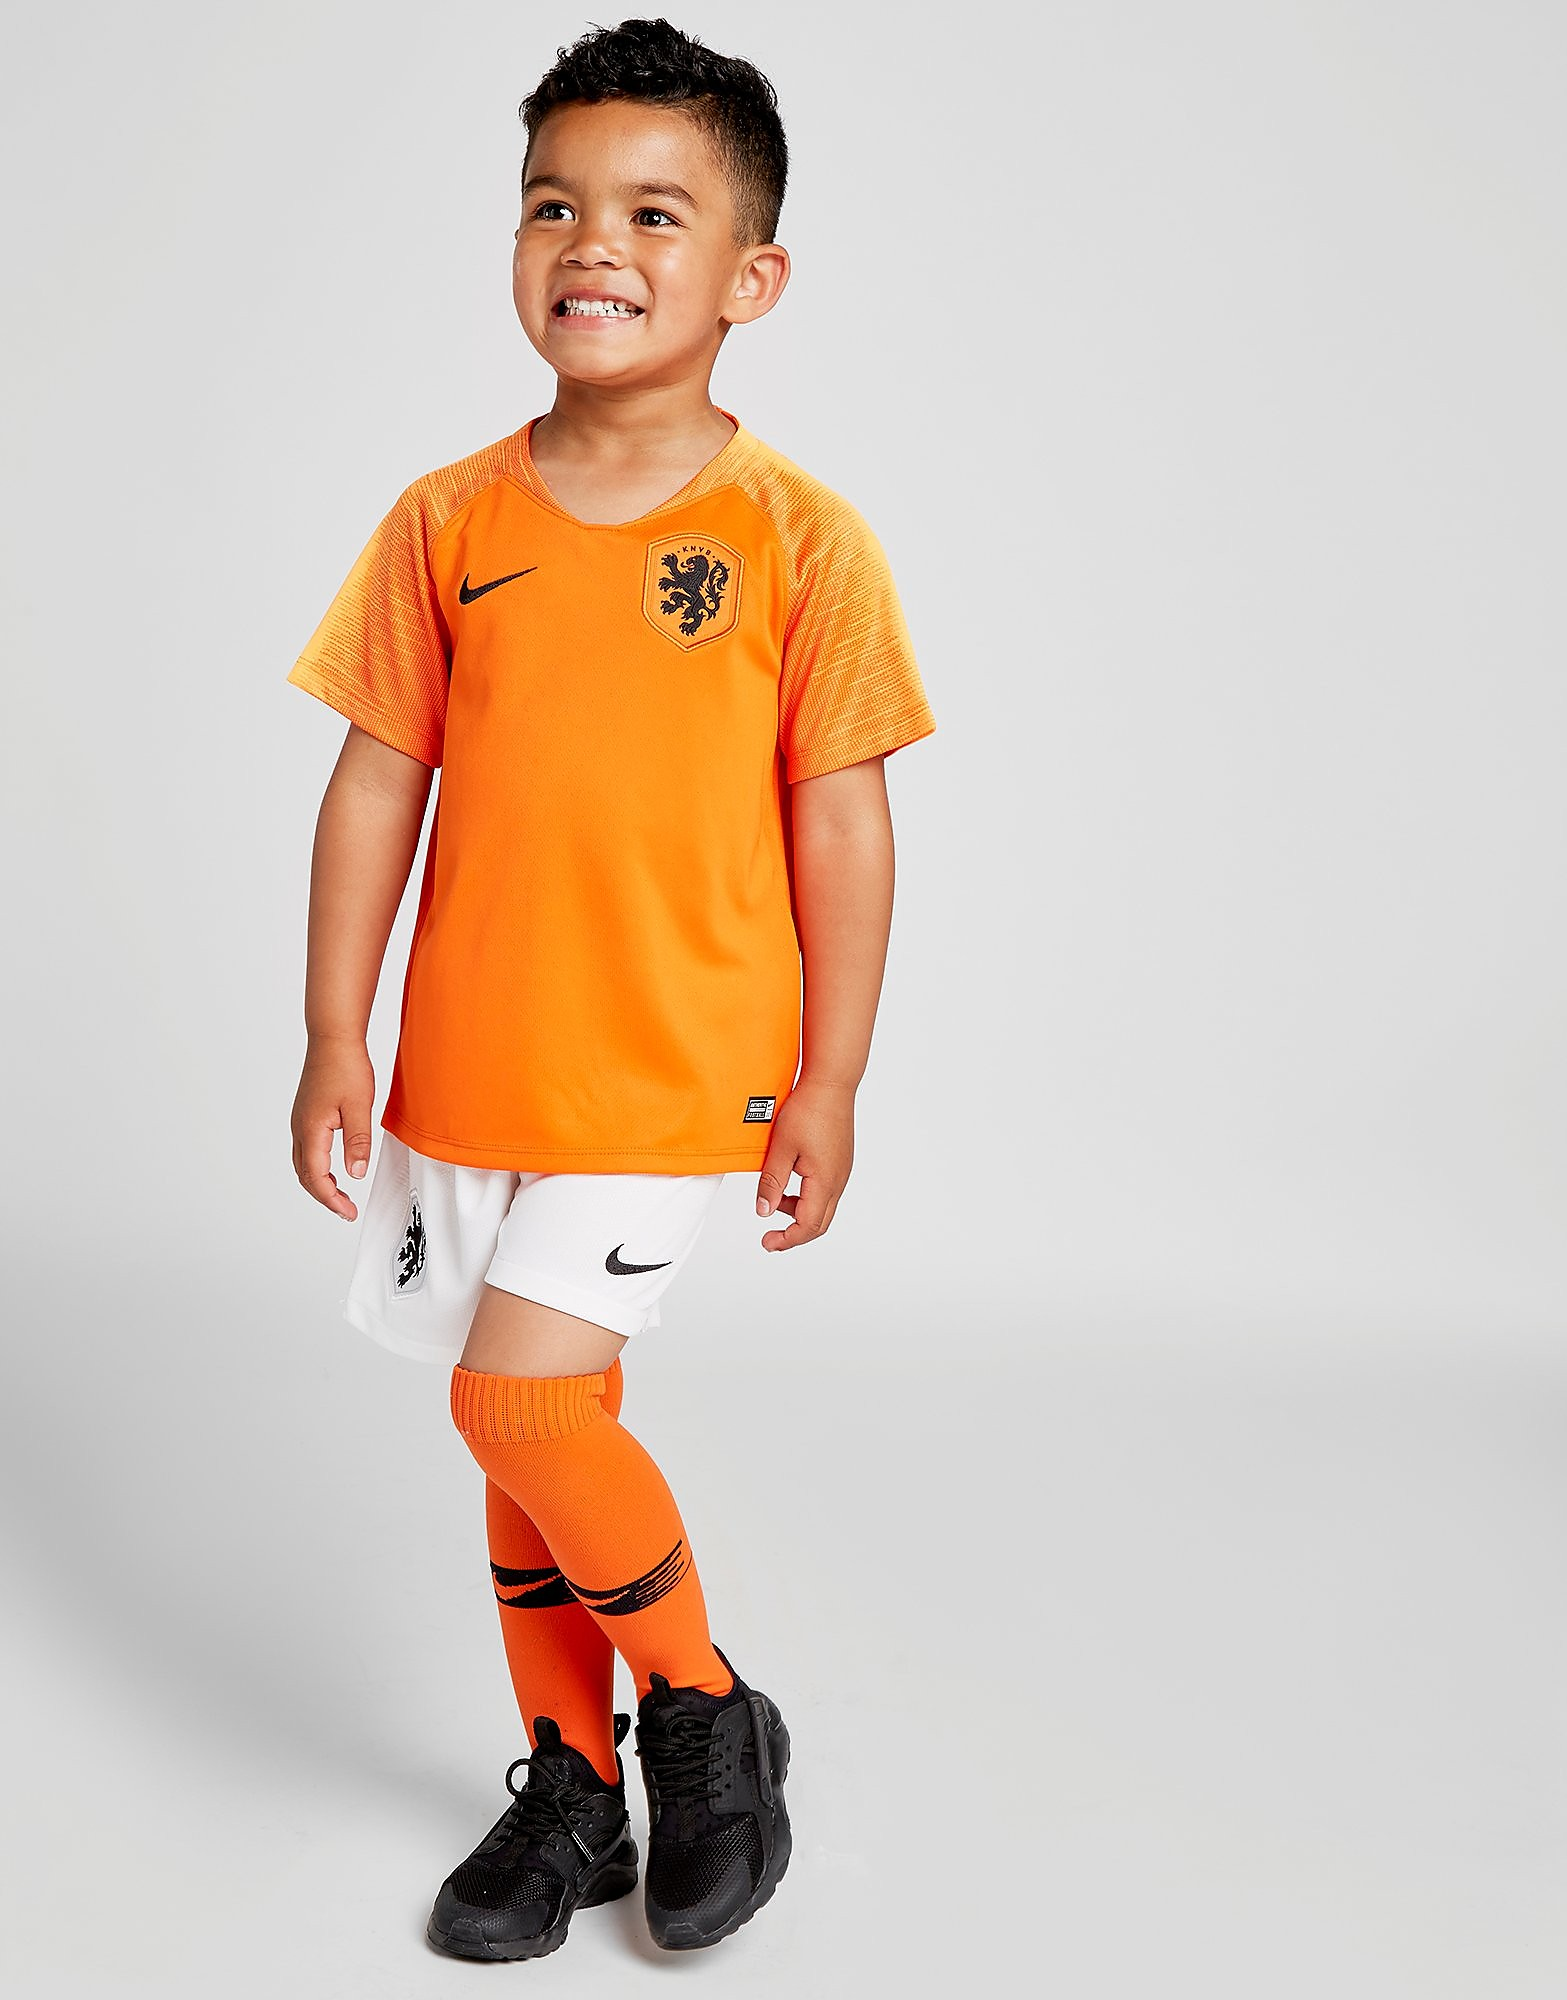 Nike Holland 2018 Home Kit Children PRE ORDER